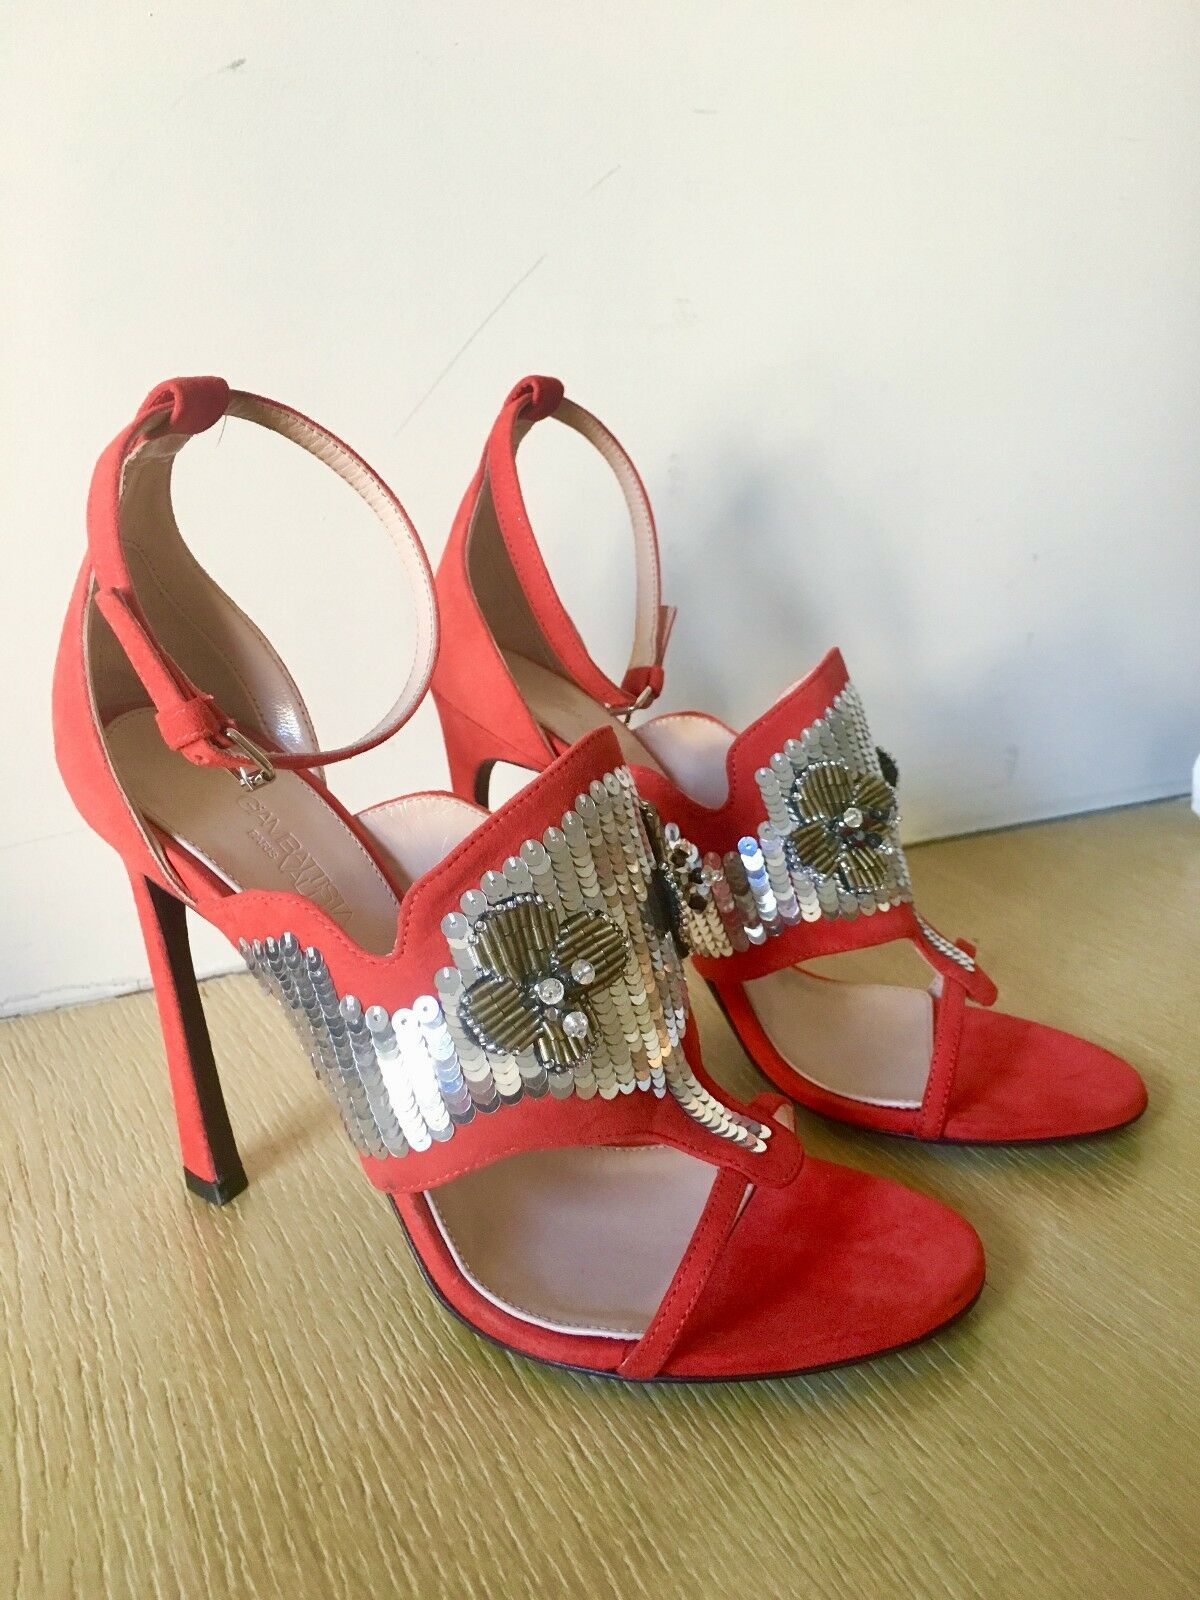 GIAMBATTISTA VALLI bag dress rouge rouge rouge argent or runway sequins jewel chaussures 38 us 8 ae9919